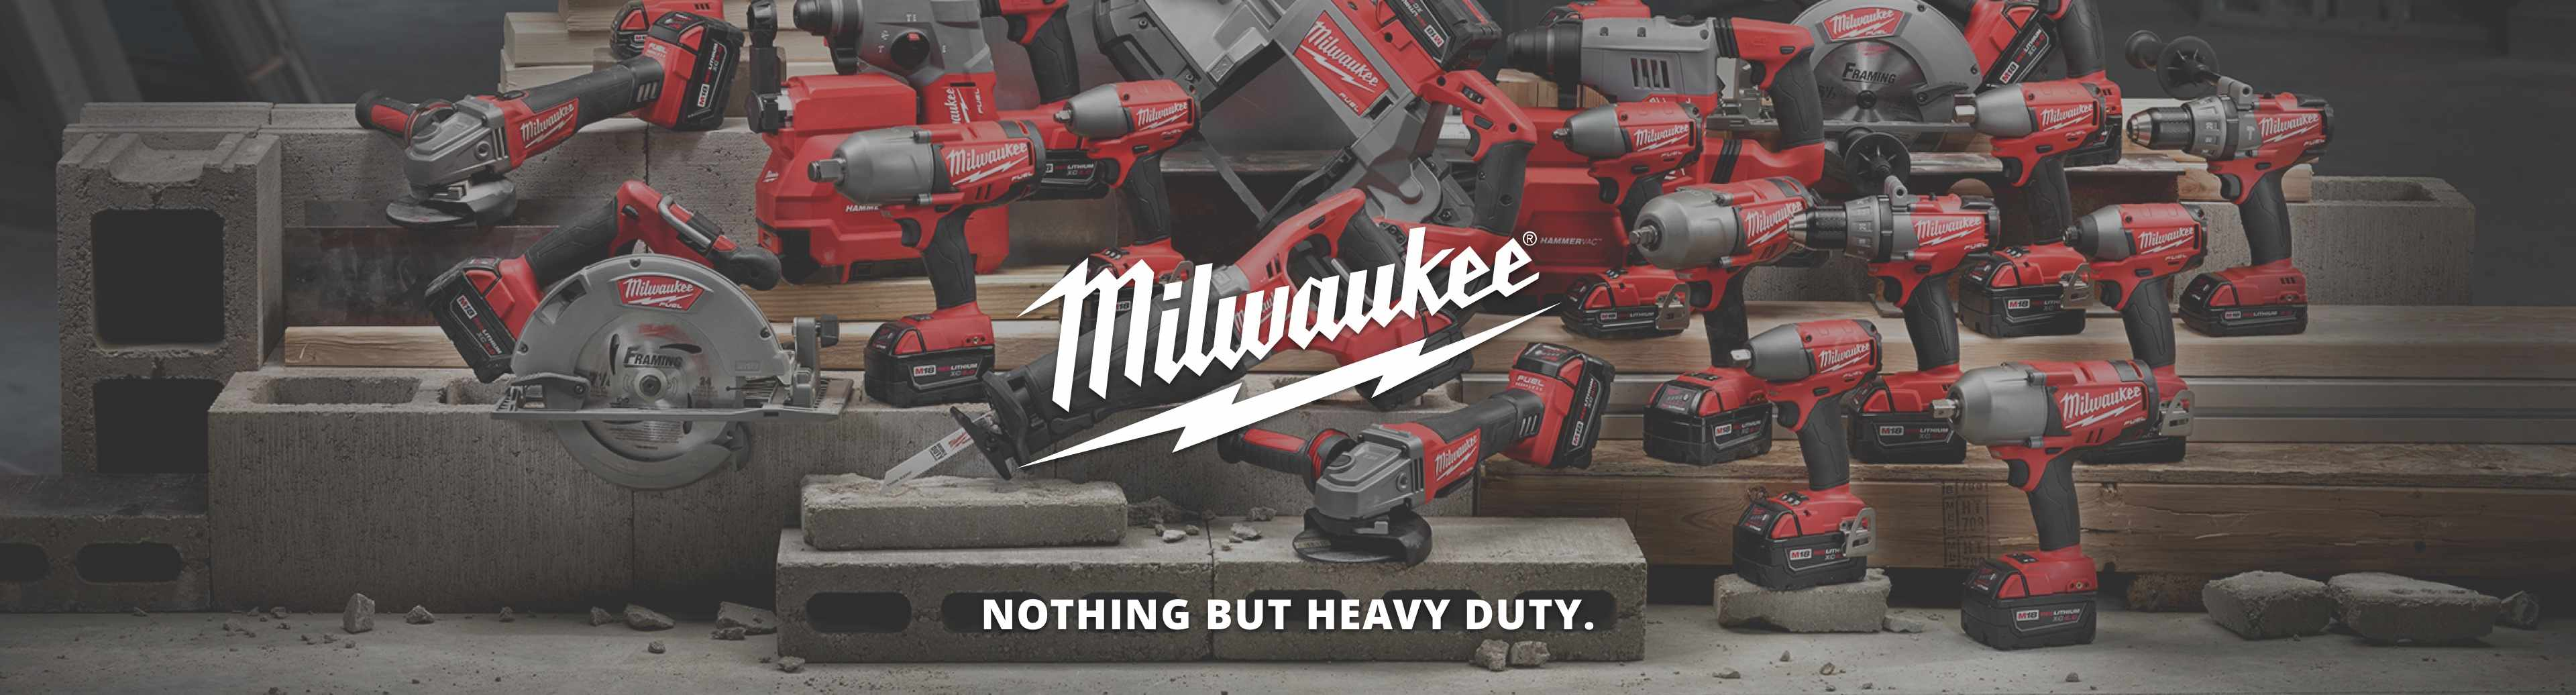 Shop Milwaukee power tools at Paterson Hardware